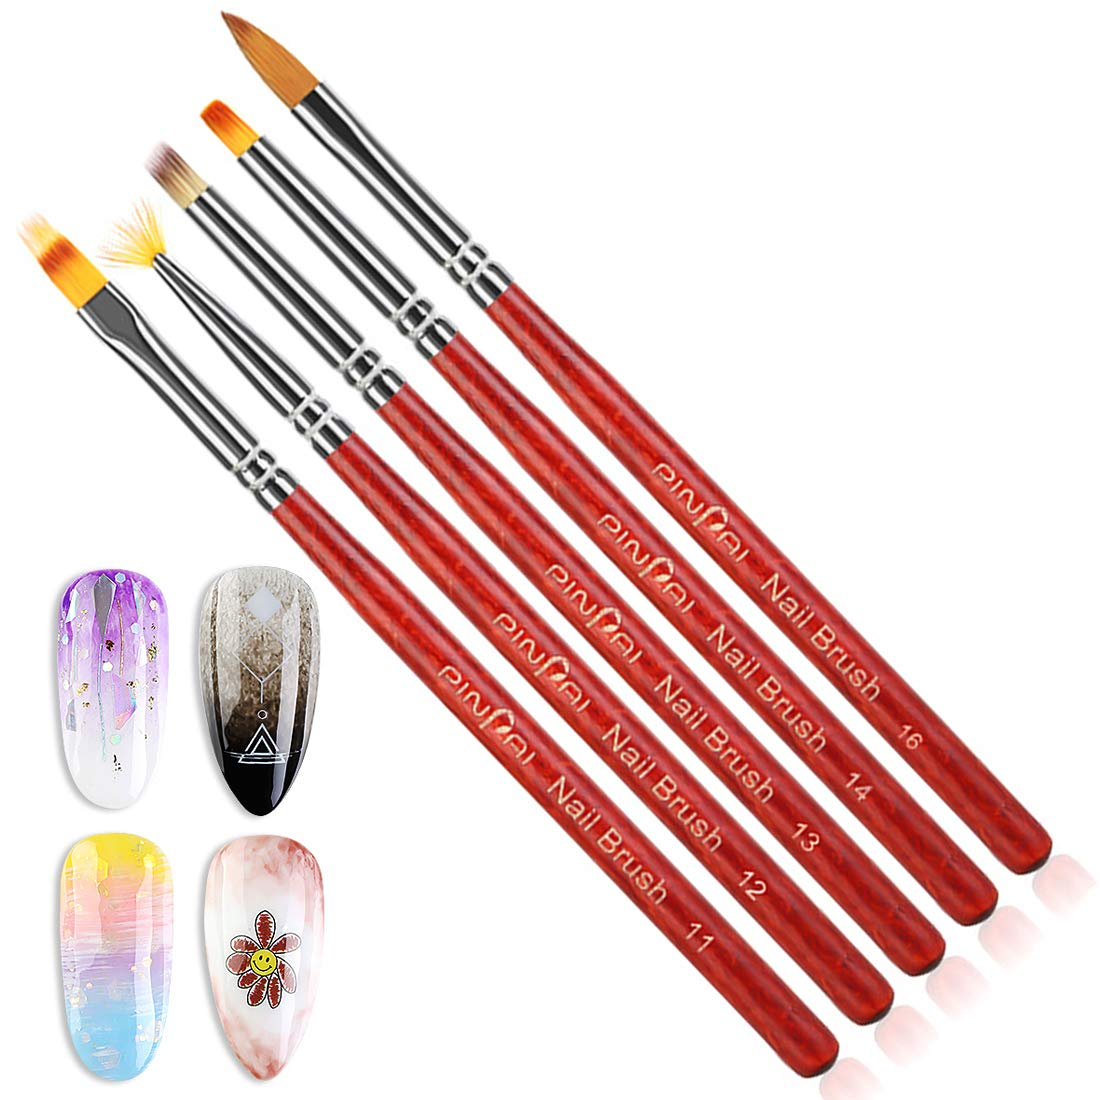 WOKOTO 5Pcs Nail Brushes For Acrylic Application Gel Builder BrushesWooden Nail Ombre Pen Manicure Gradient Design Tools